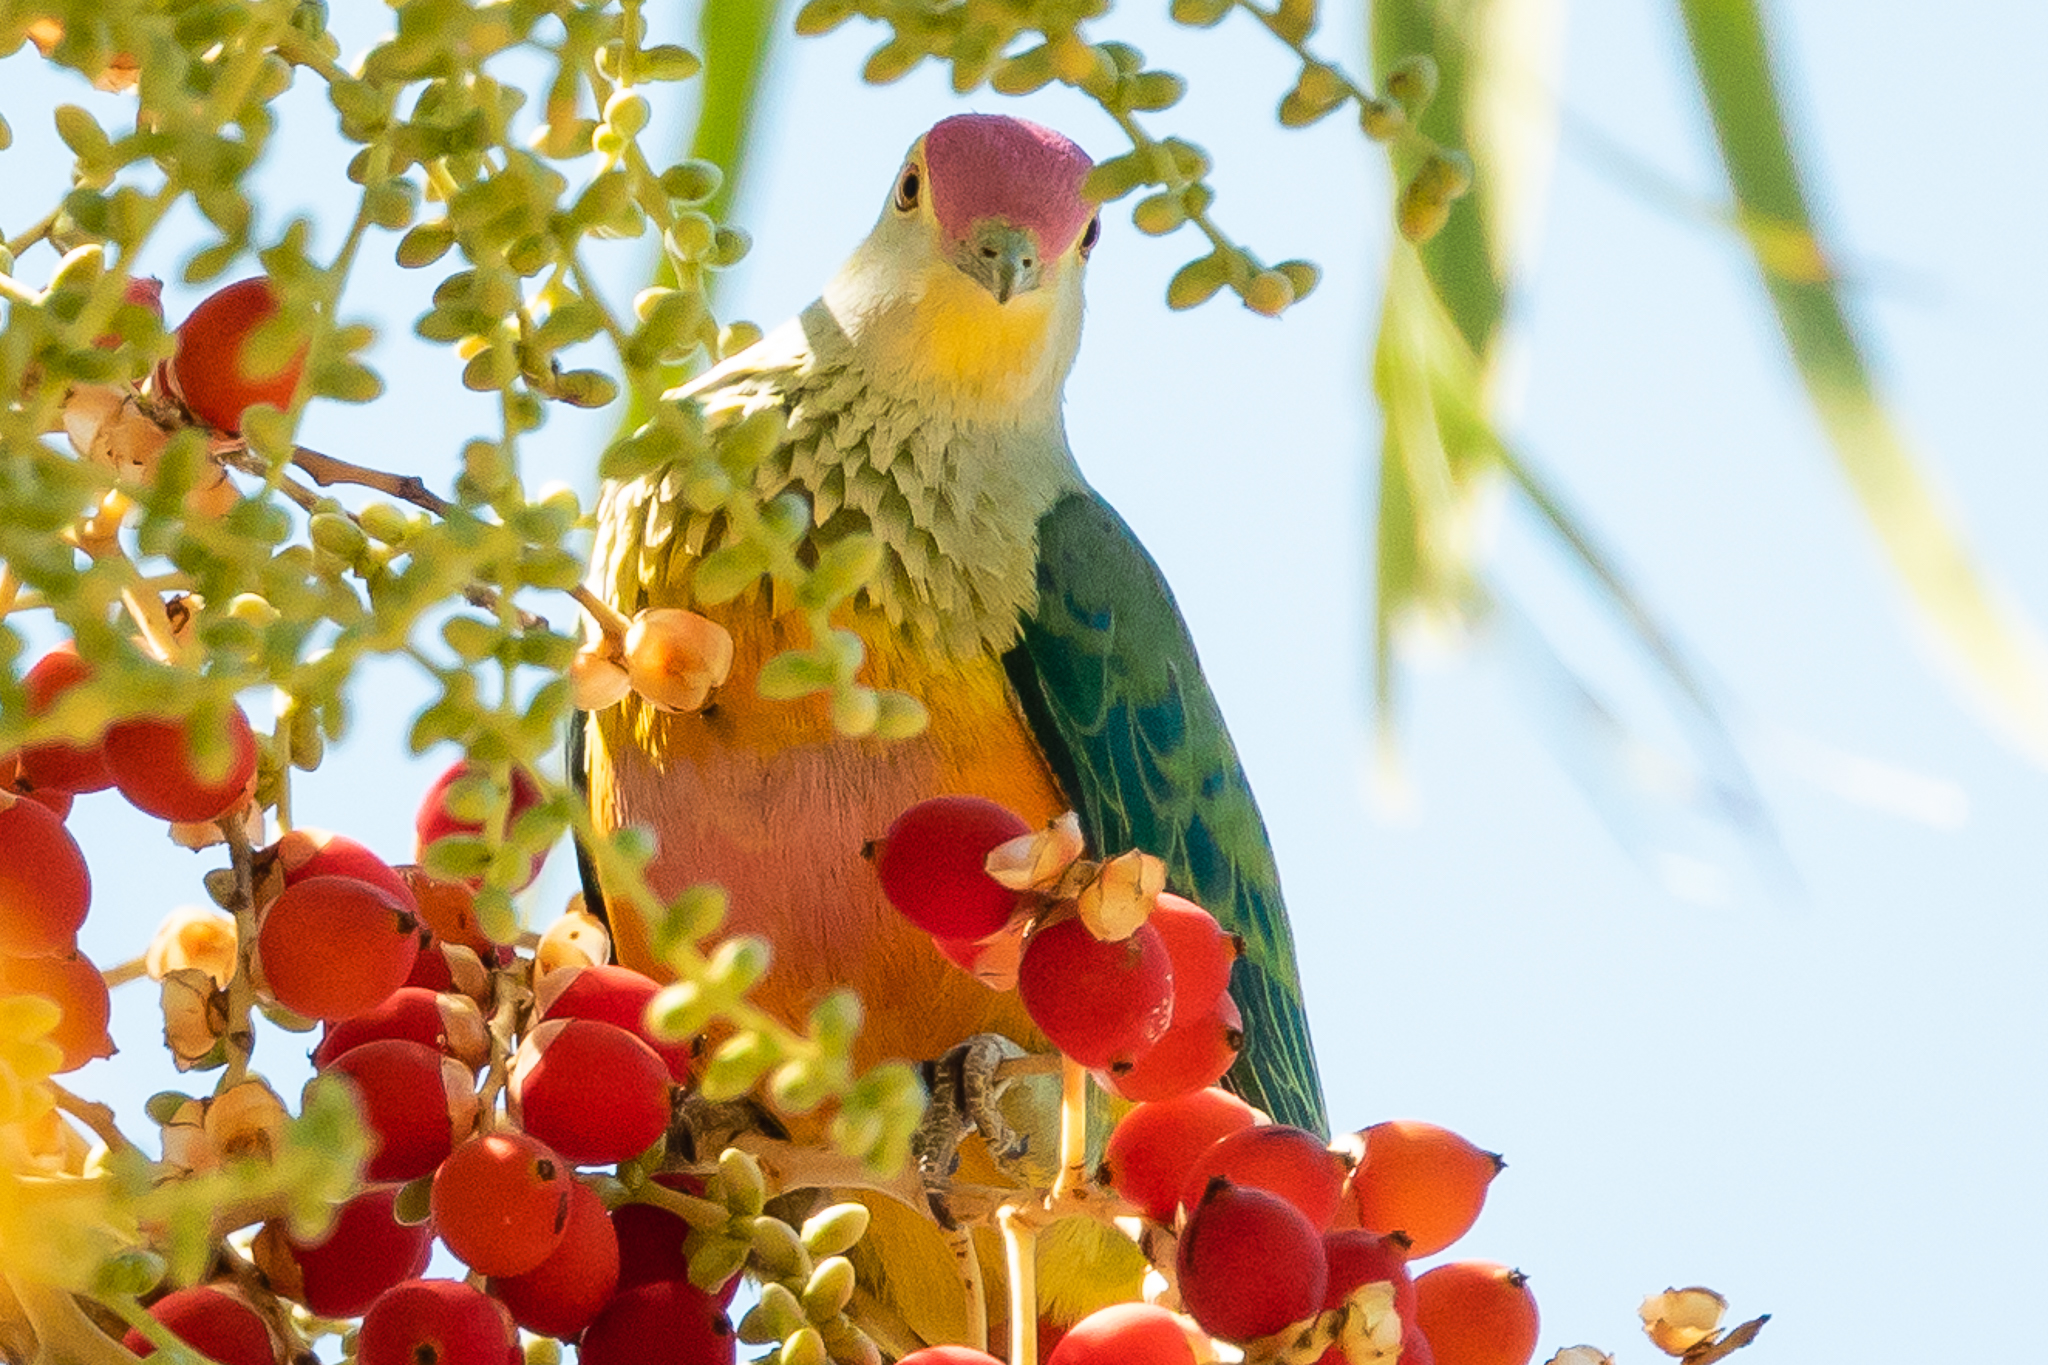 - Bush birds adapt to loss of trees and swamps and make the most of the farm landscape and remaining bush. Here a Rose-crowned Fruit-Dove enjoys well-ripened fruit from a palm tree.